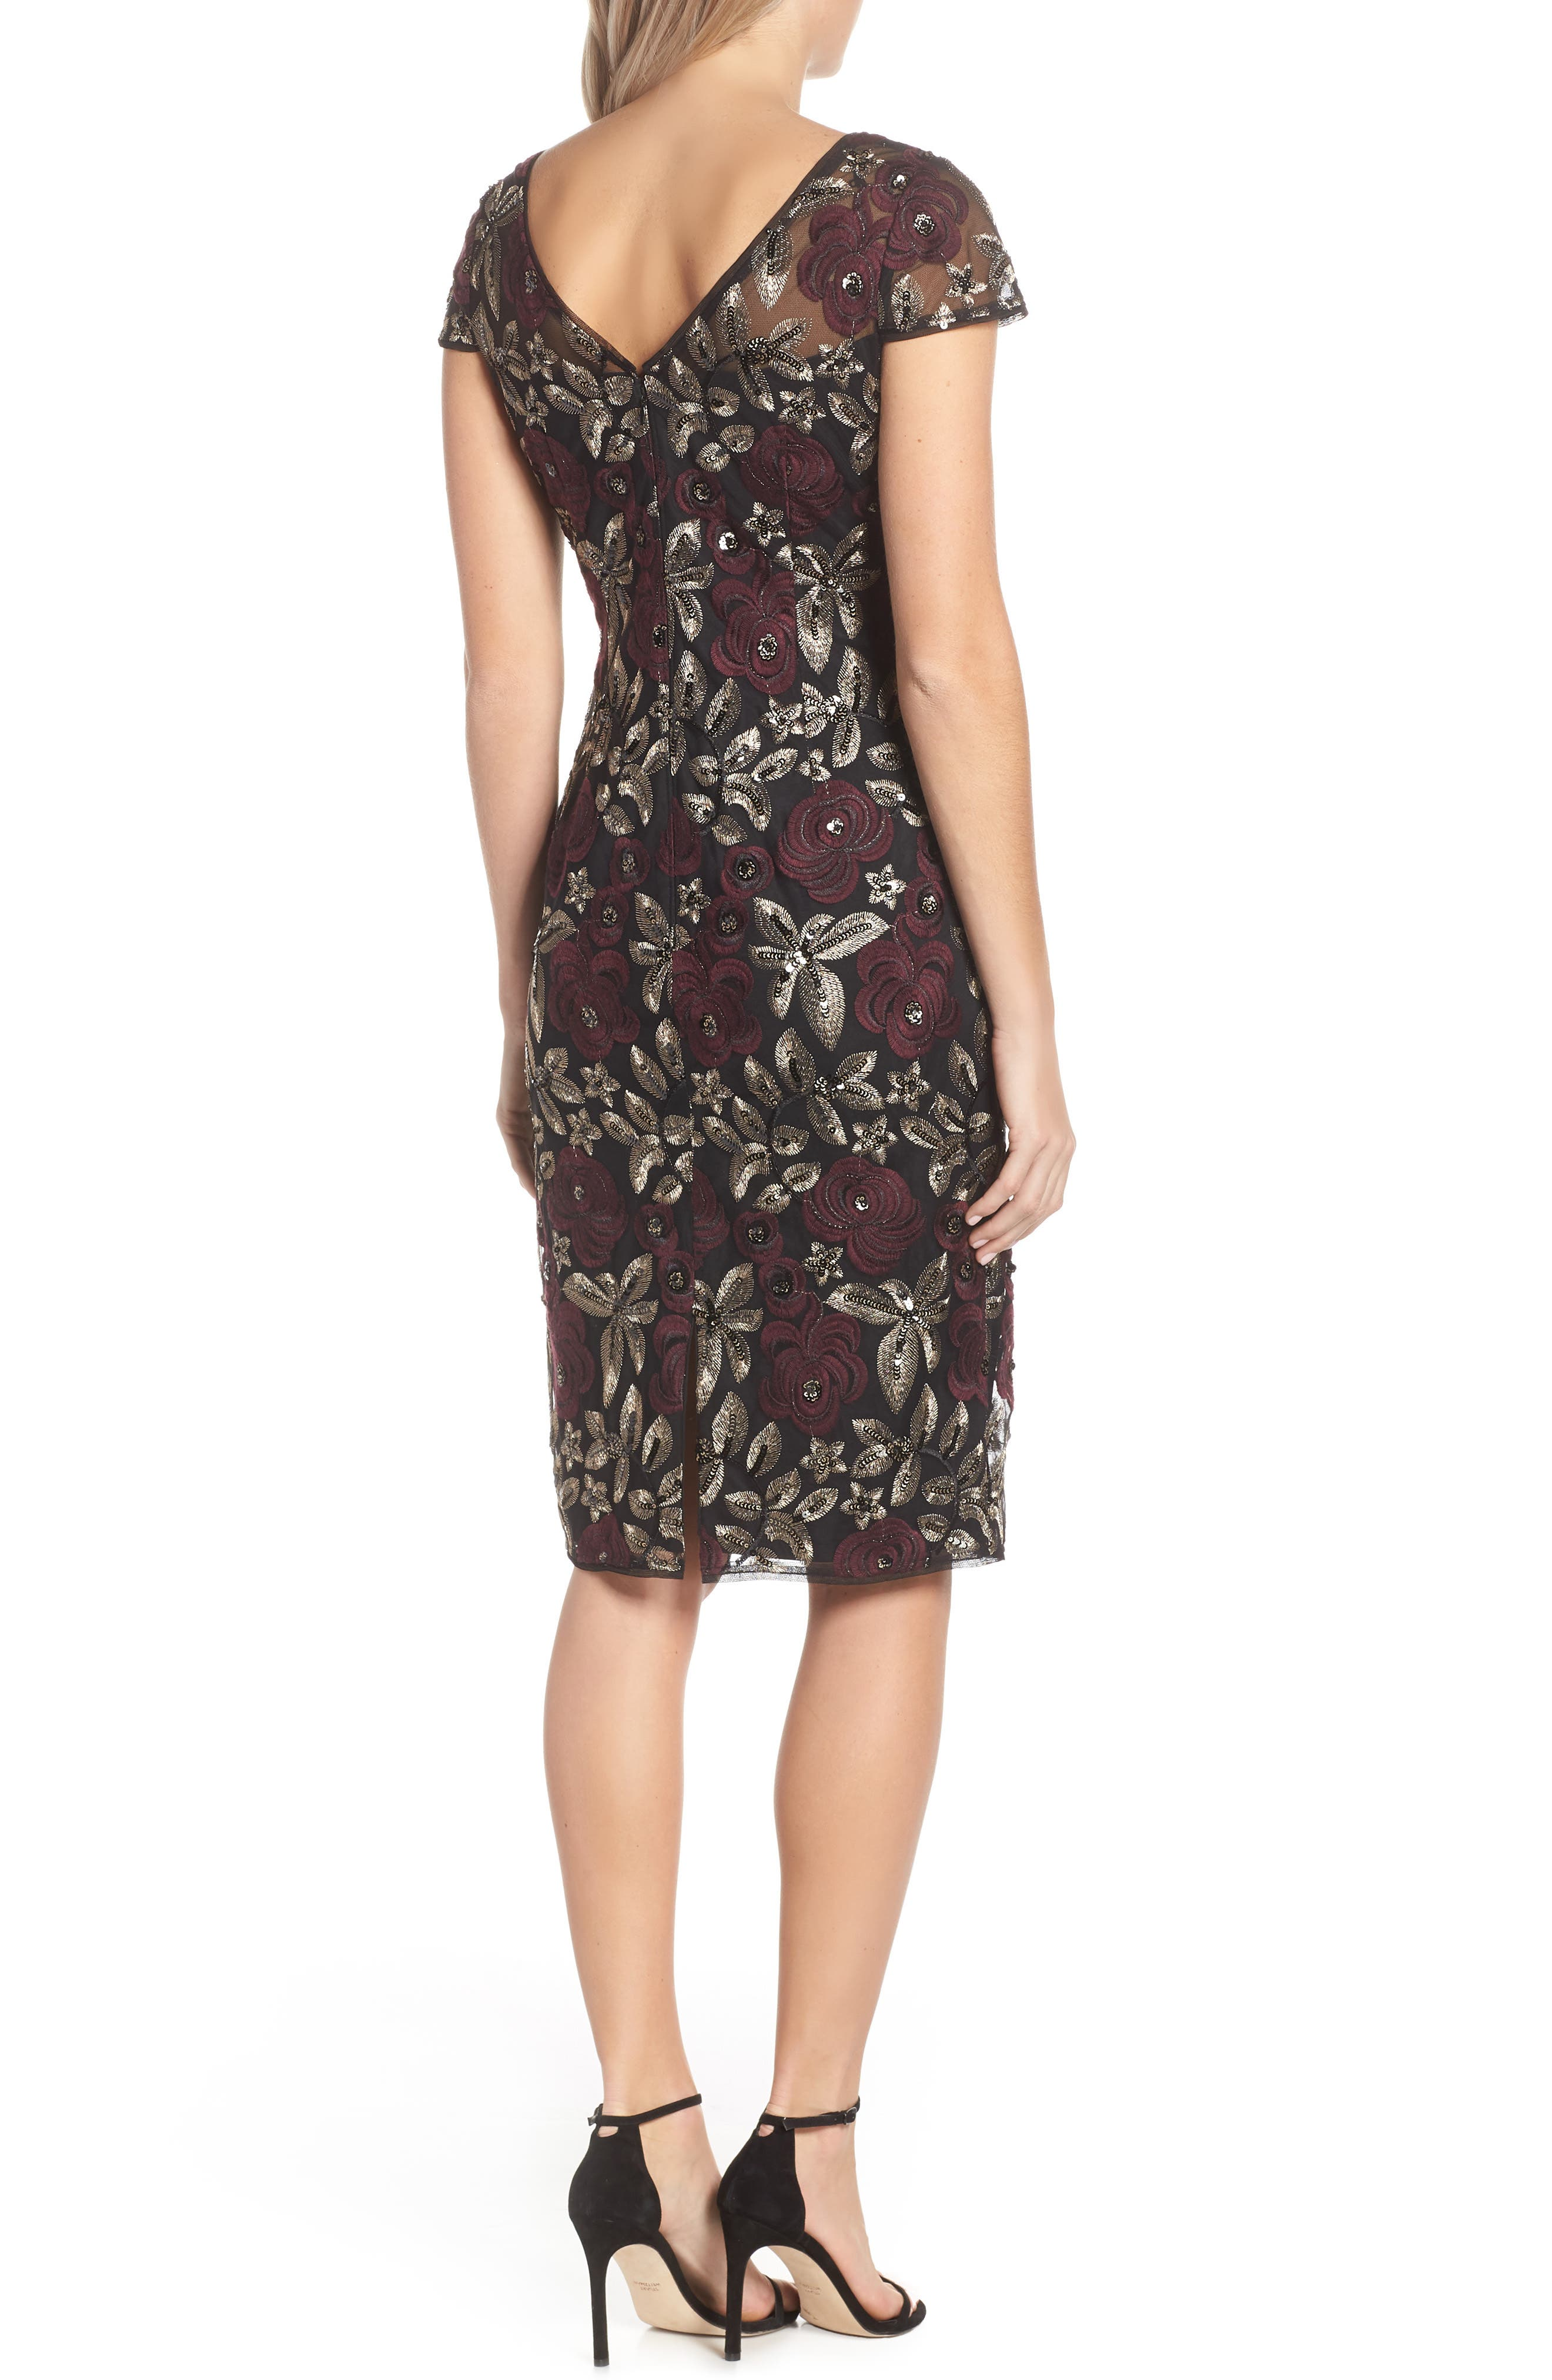 ADRIANNA PAPELL, Sequin Embroidered Cocktail Dress, Alternate thumbnail 2, color, 930